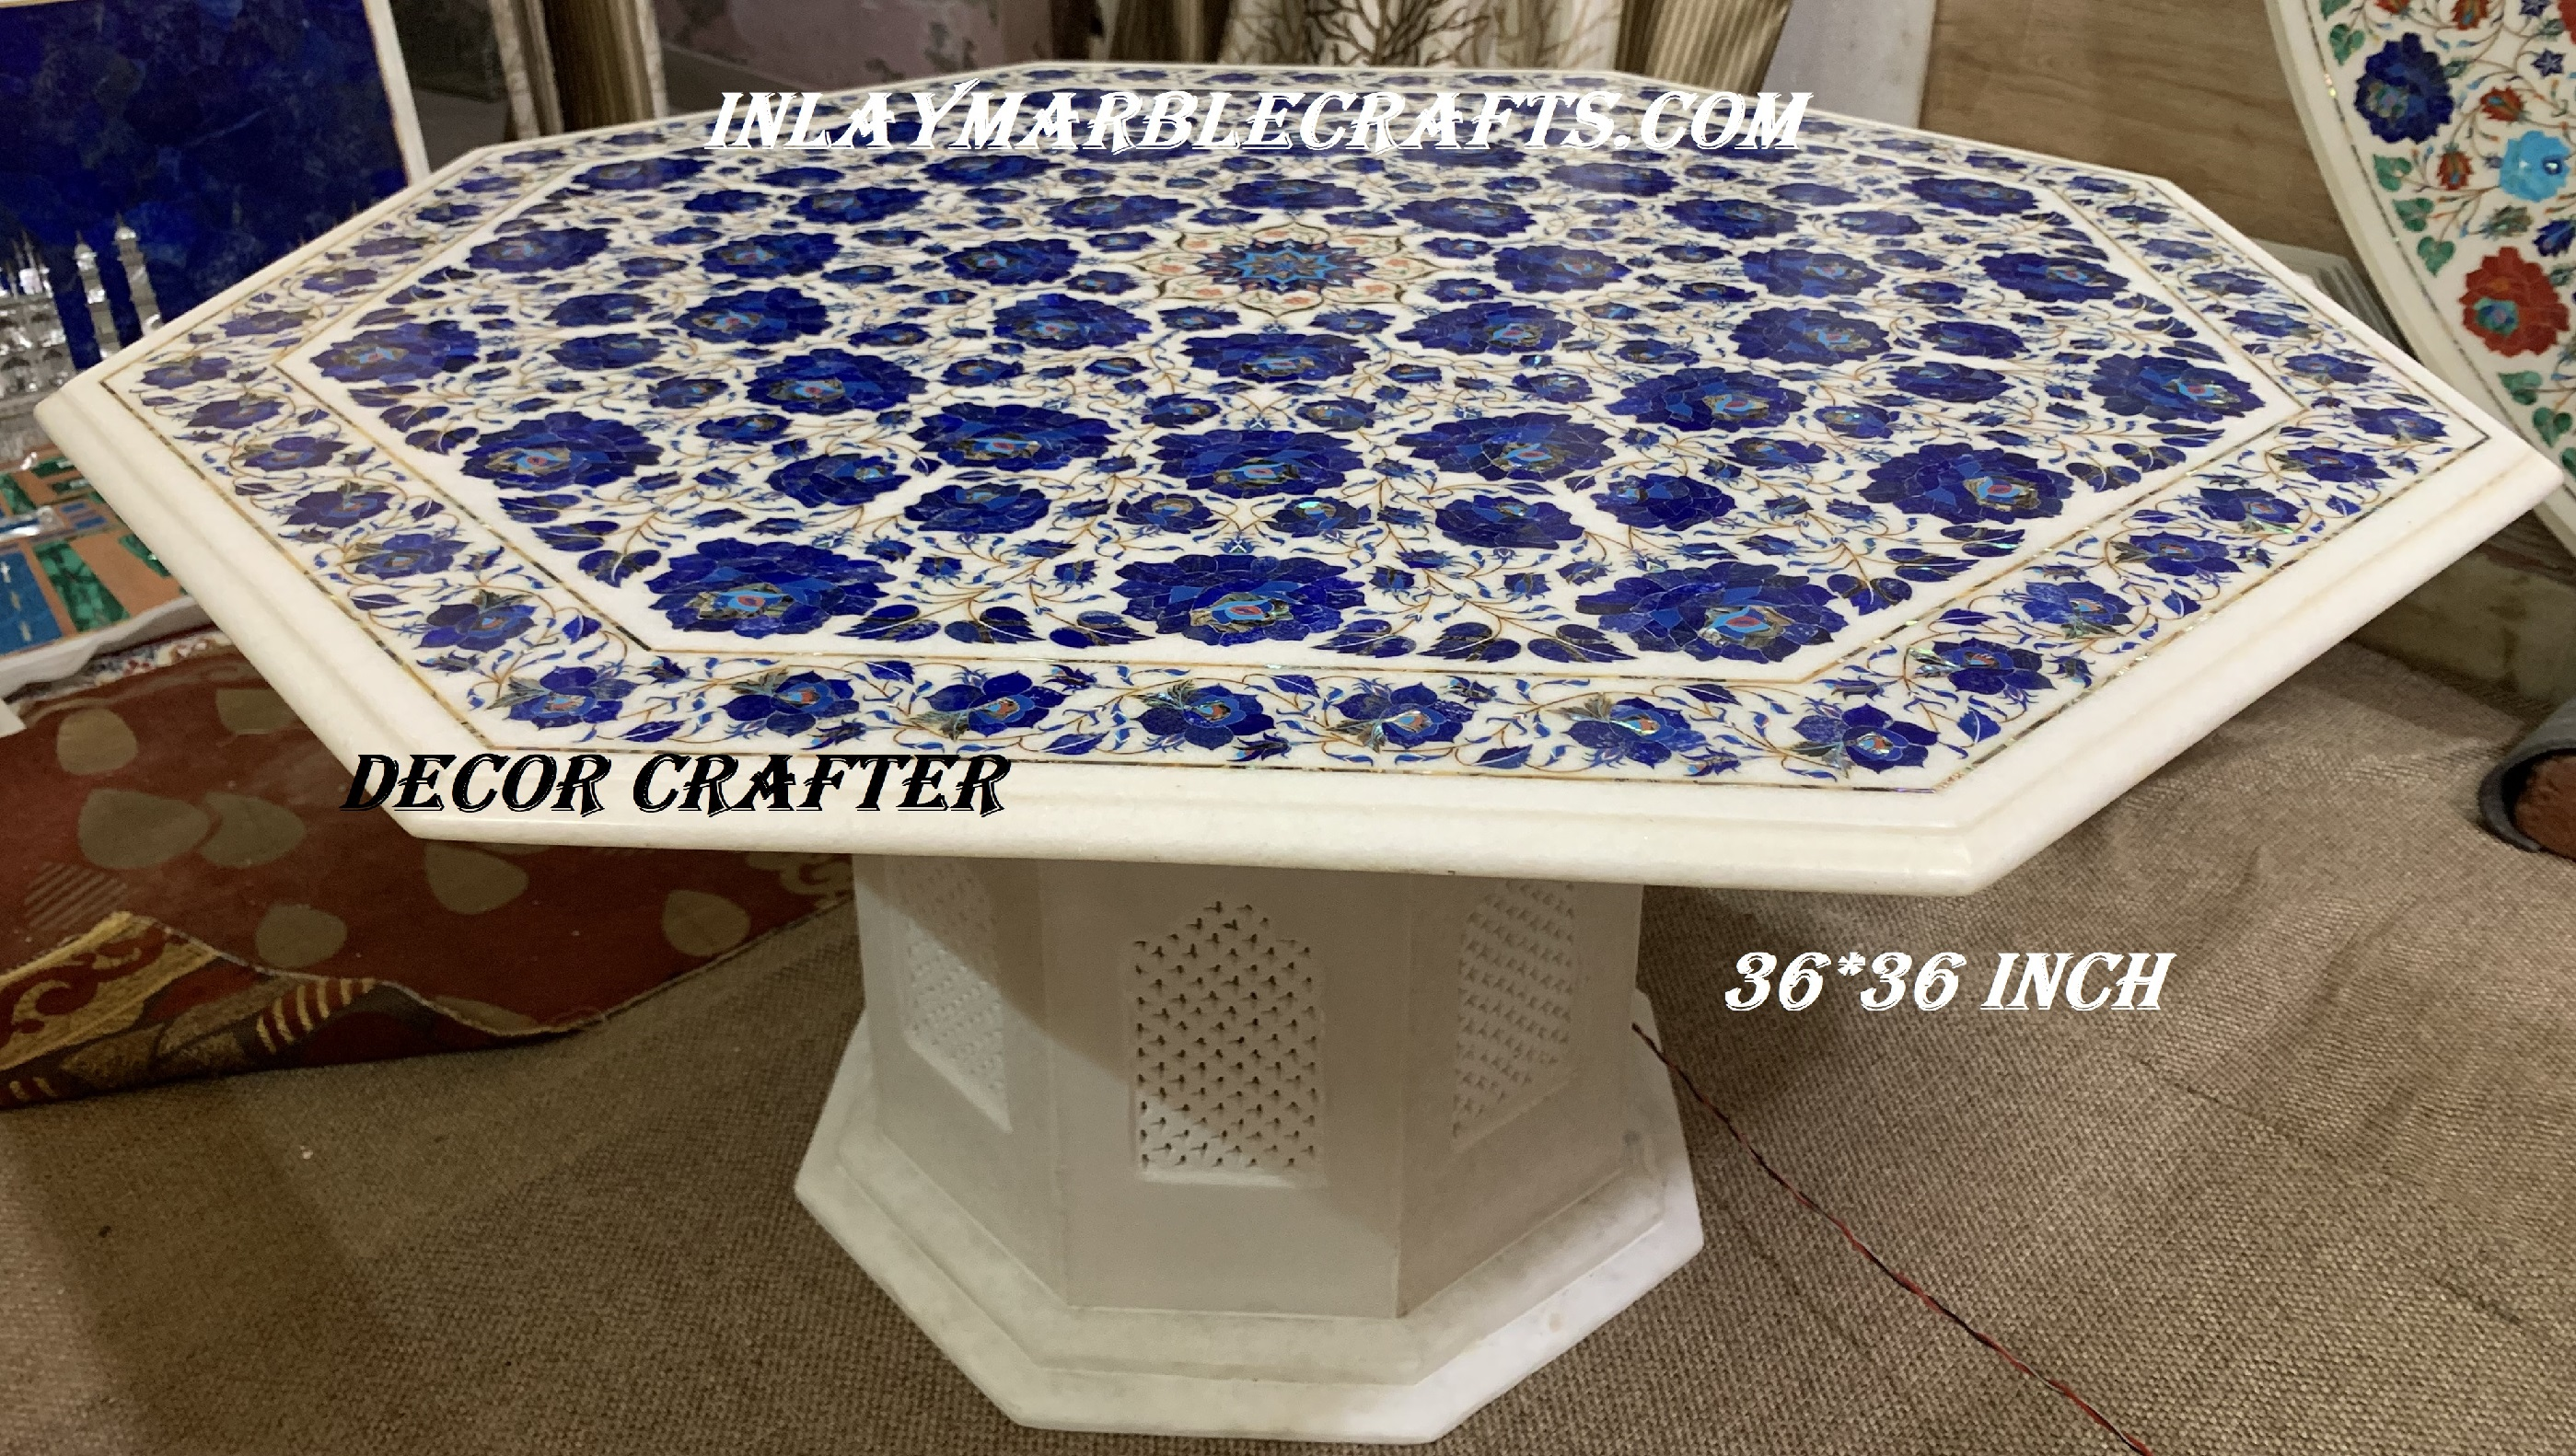 Lapis Lazuli Marble Dining Table| Marble Coffee Table| Marble Outdoor Table| Marble Center Table Having Beautiful Flower Inlay Table Design